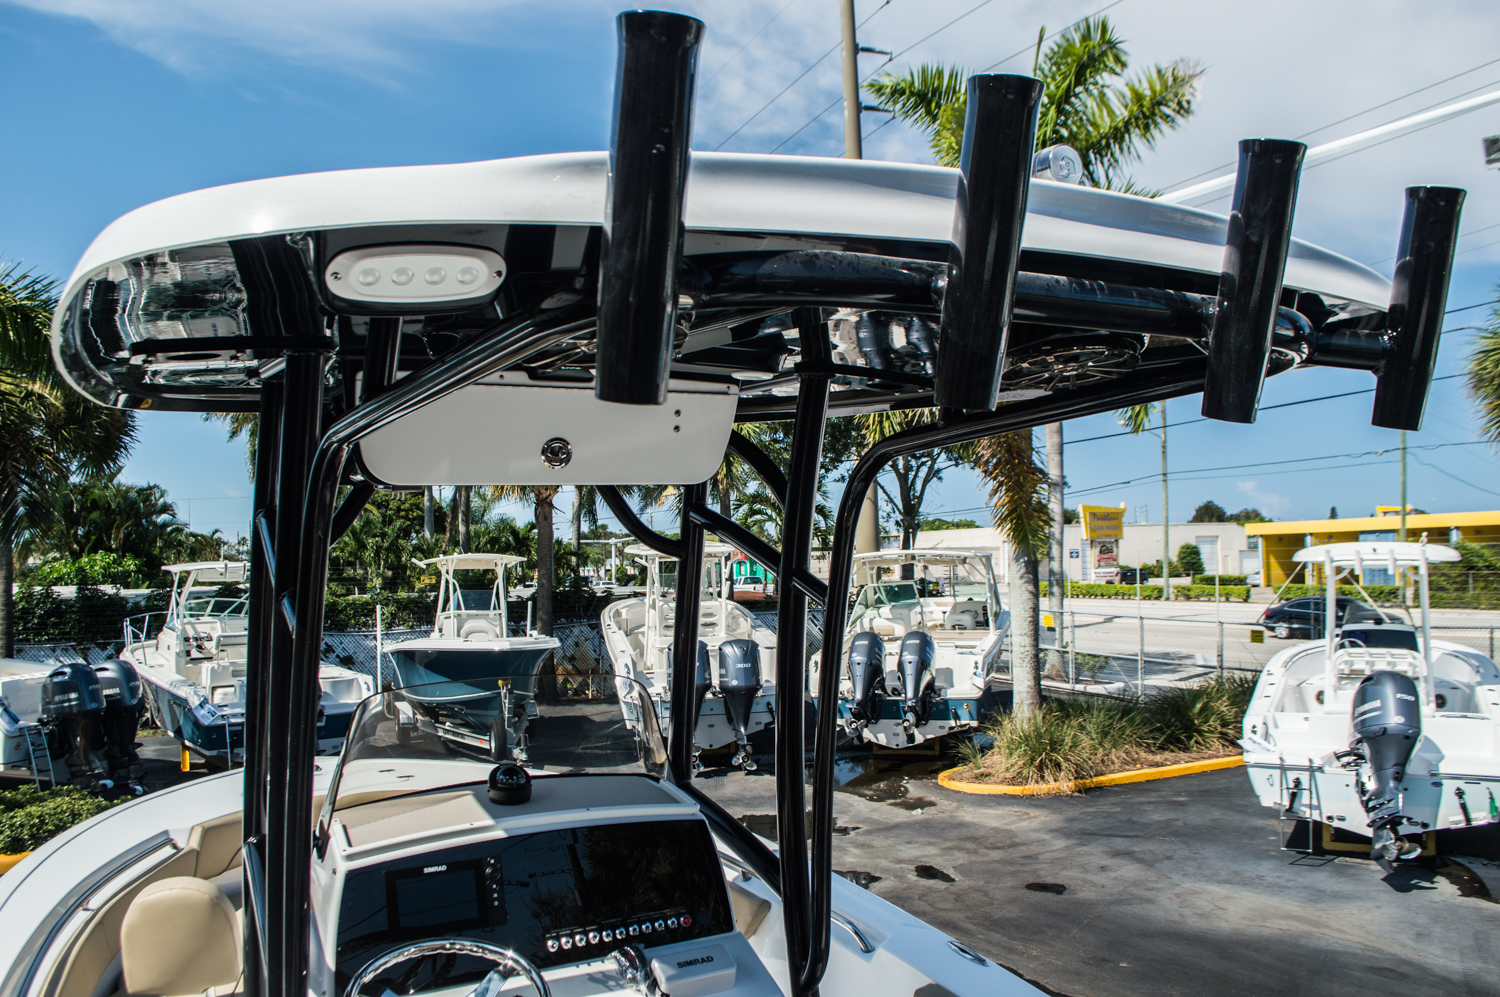 Thumbnail 10 for New 2016 Sportsman Open 212 Center Console boat for sale in West Palm Beach, FL